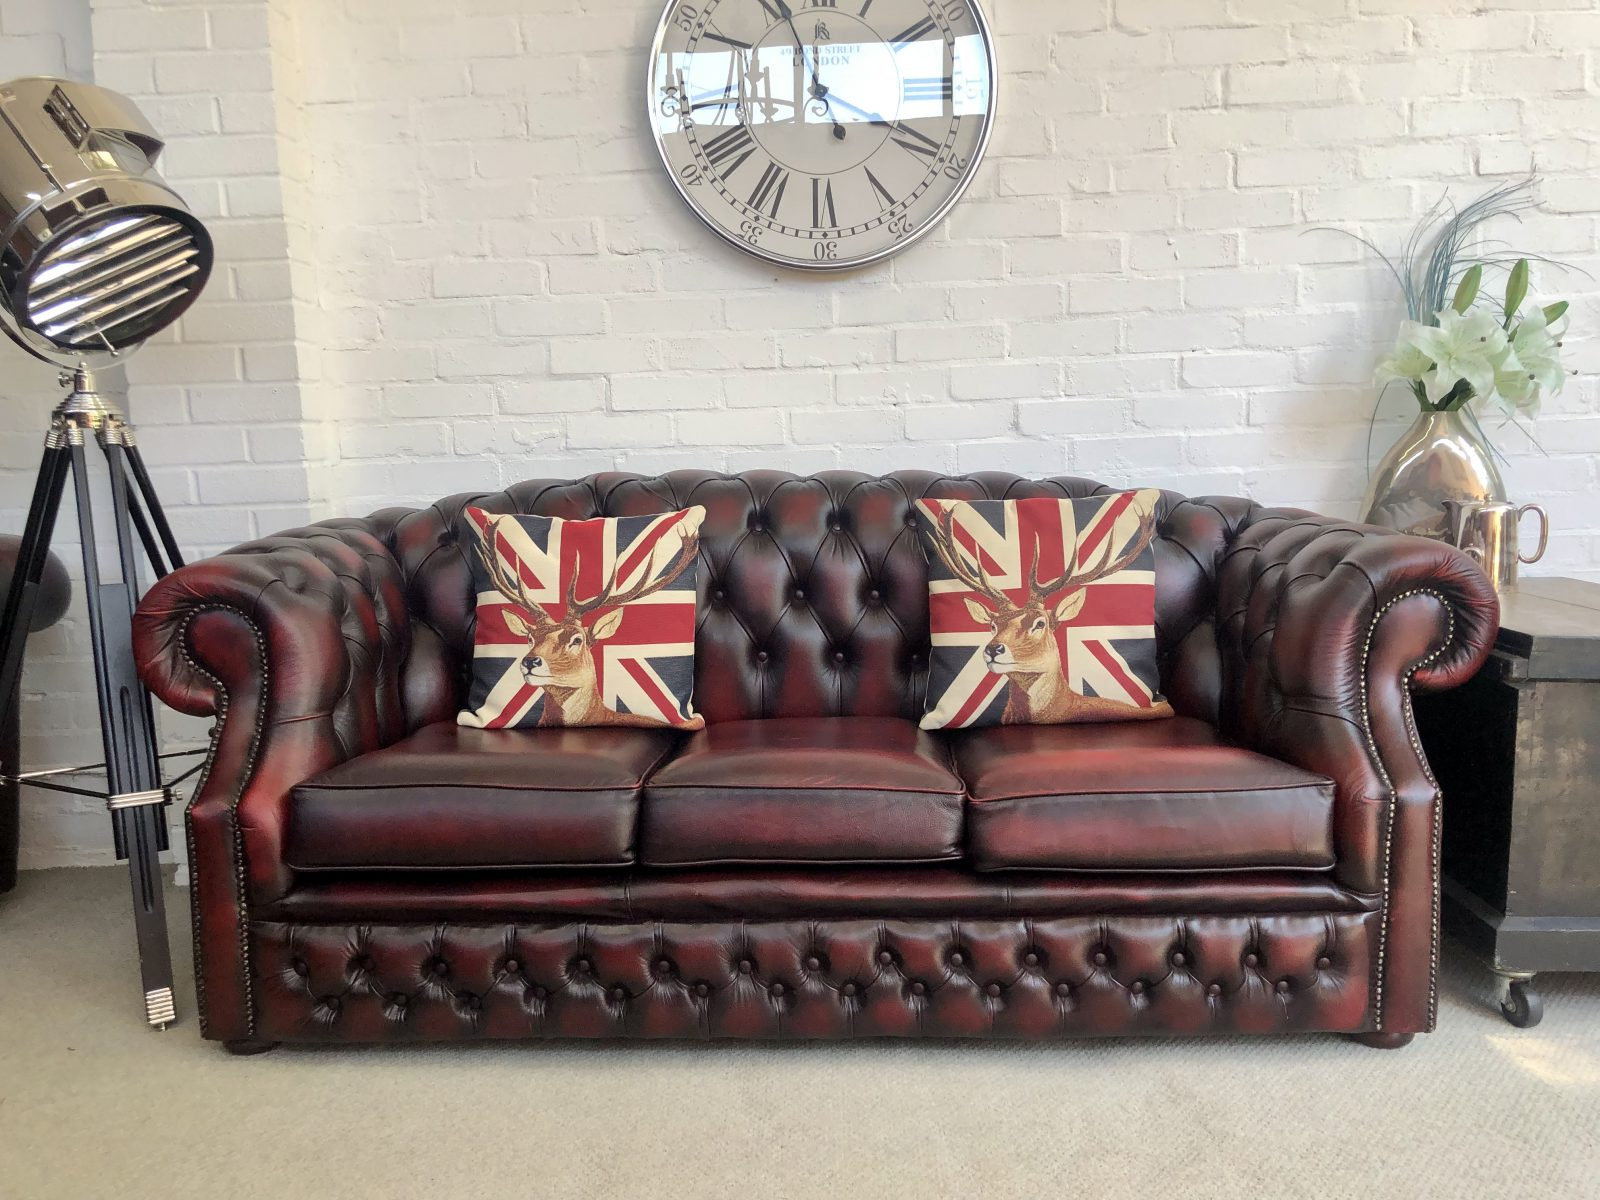 Oxblood Red Chesterfield Sofa.